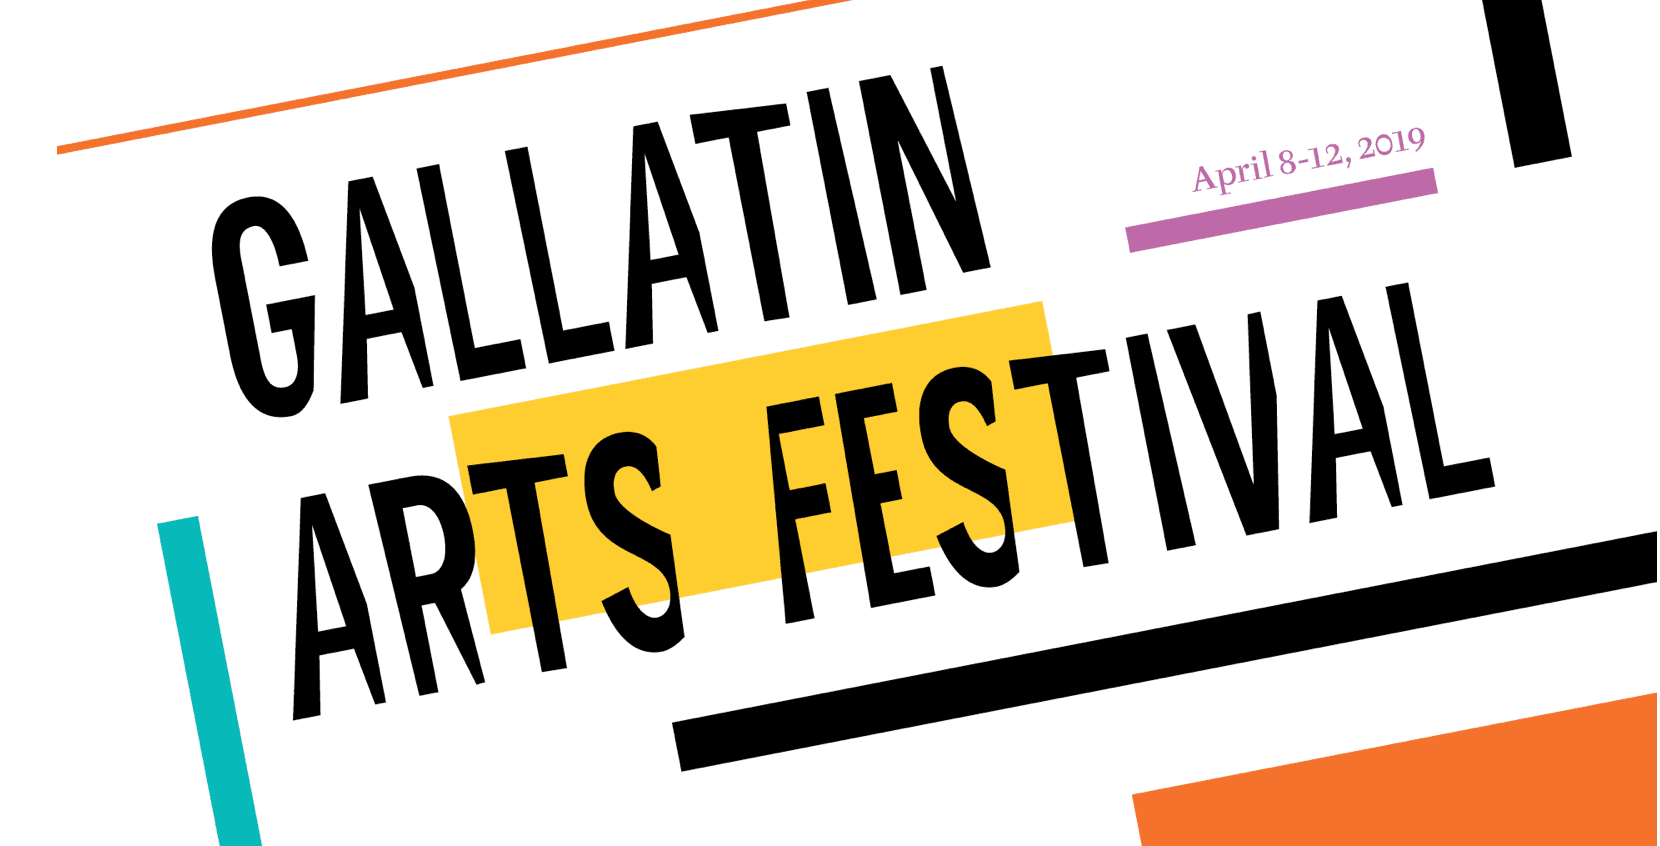 """A white background with various colored graphic boxes arranged on it, with """"Gallatin Arts Festival"""" in black stylized font on top."""